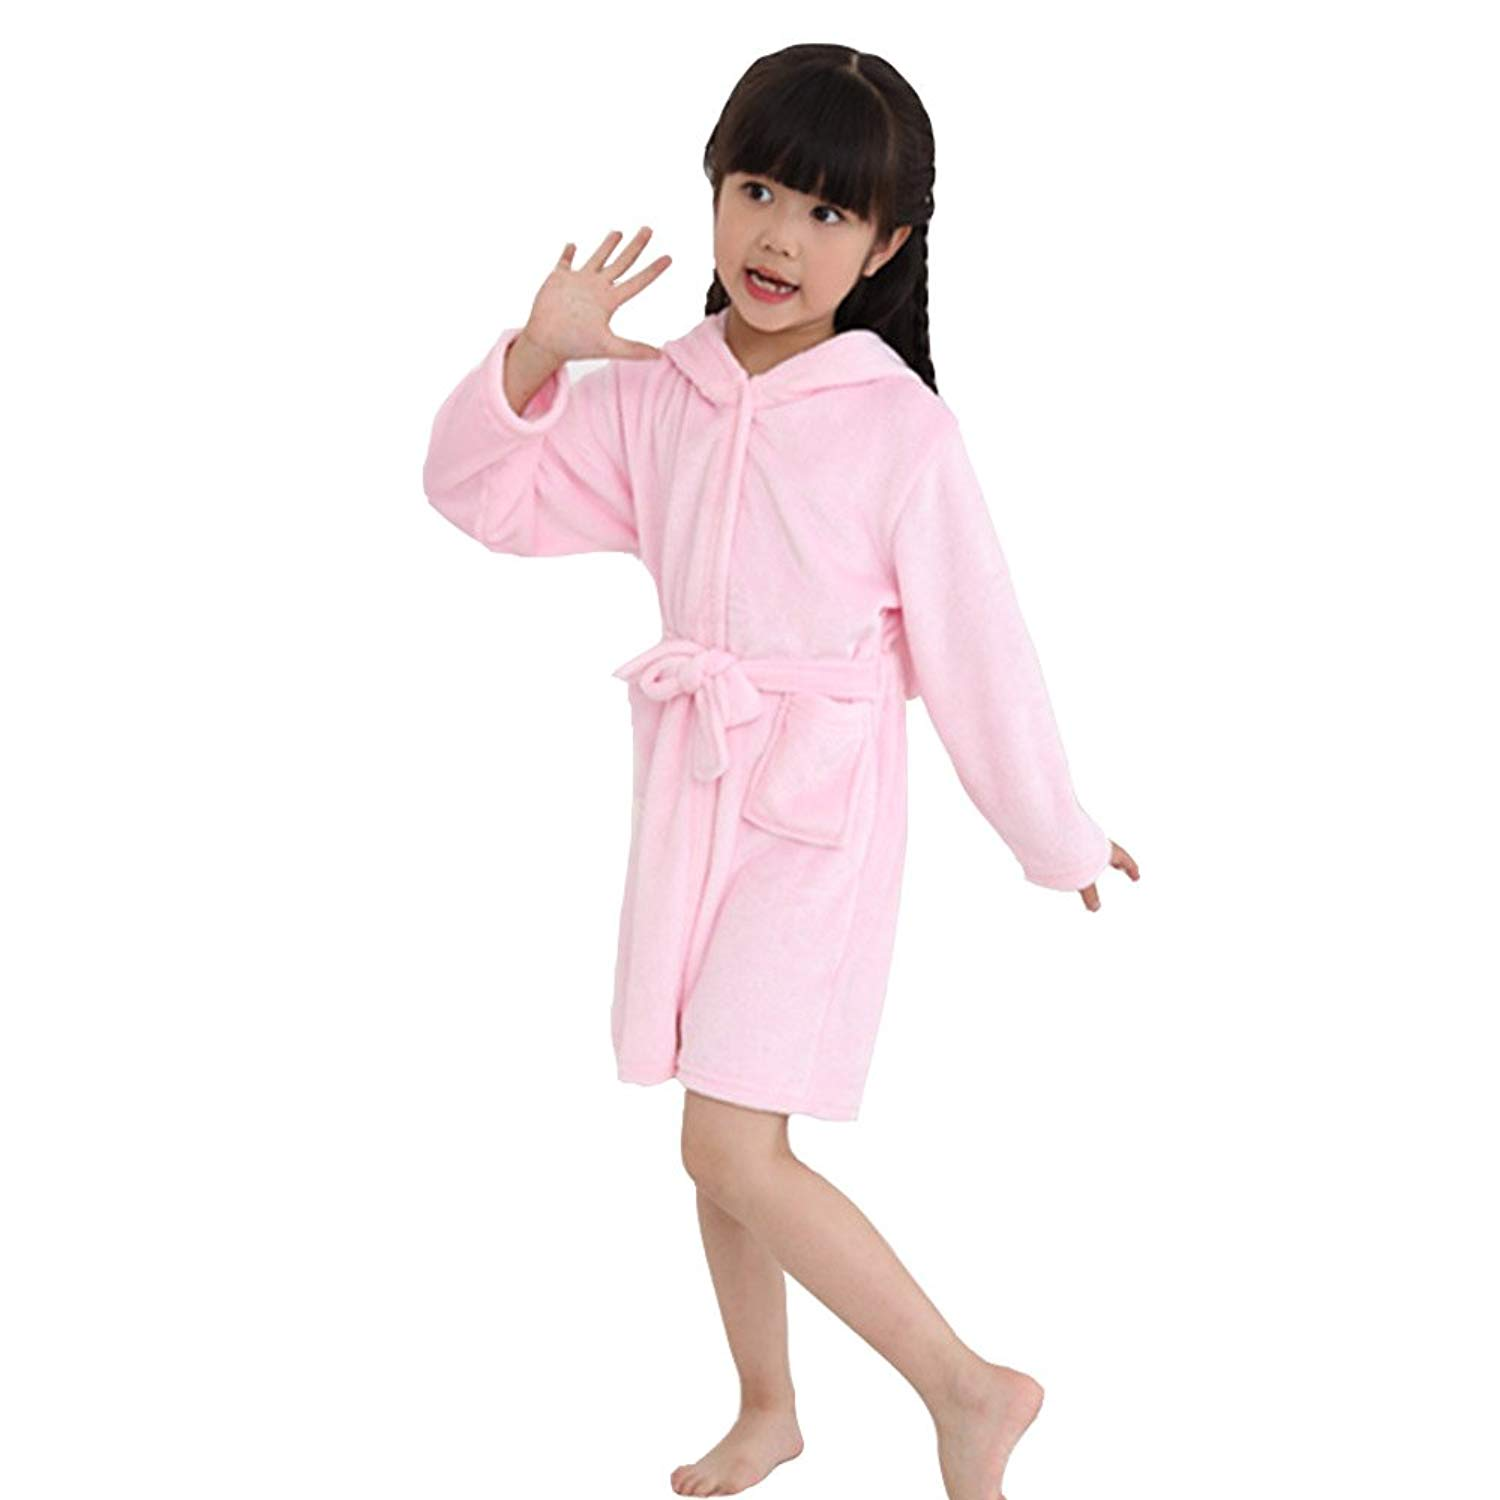 8cd1e739fd Get Quotations · Kids Animal Bathrobe Soft Warm Flannel Hooded Unicorn  Cosplay Bathrobe Dressing Gown Night Lounge Wear